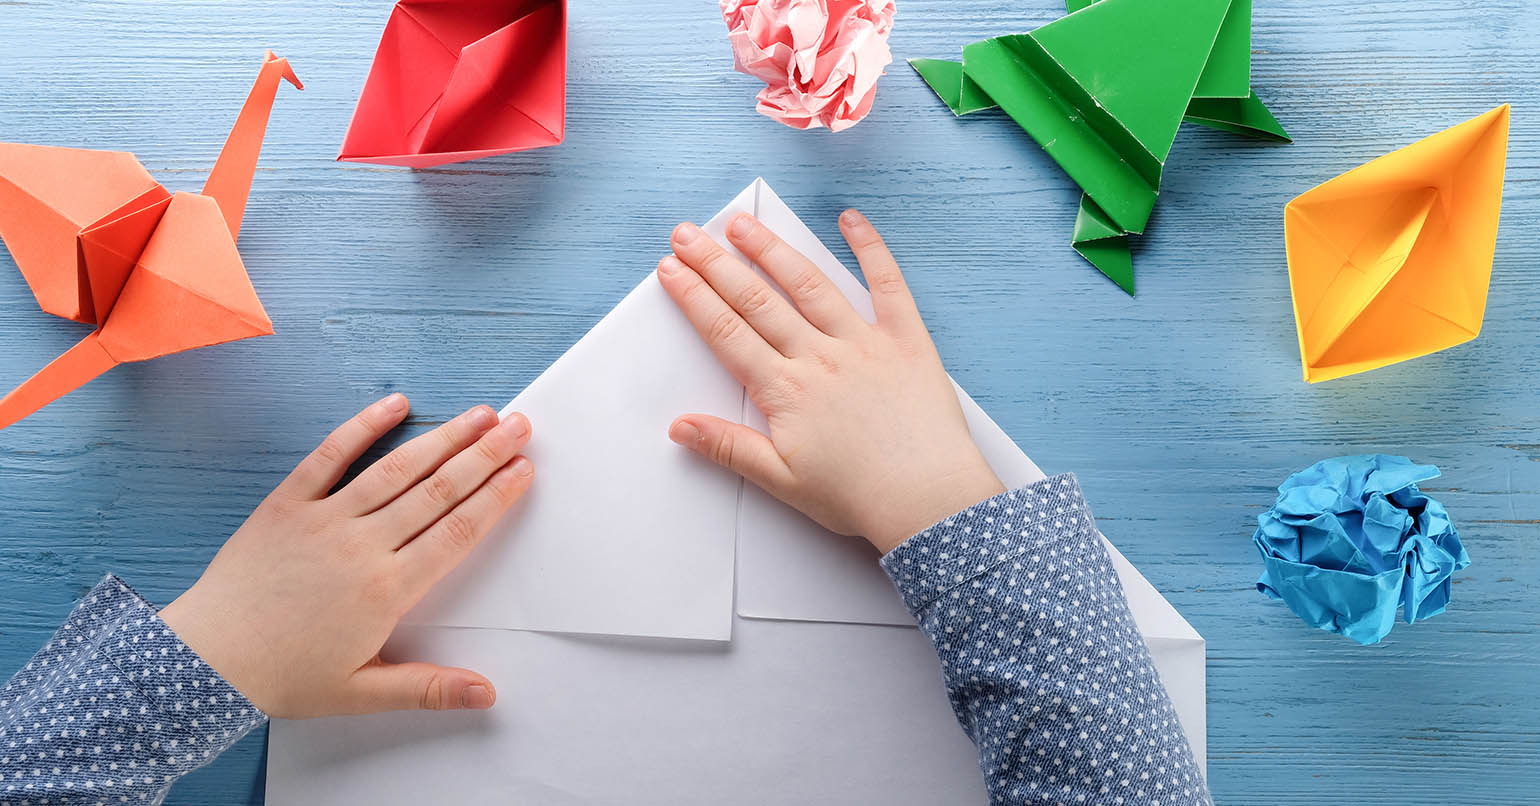 7 Stunning Benefits Of Origami to Your Child